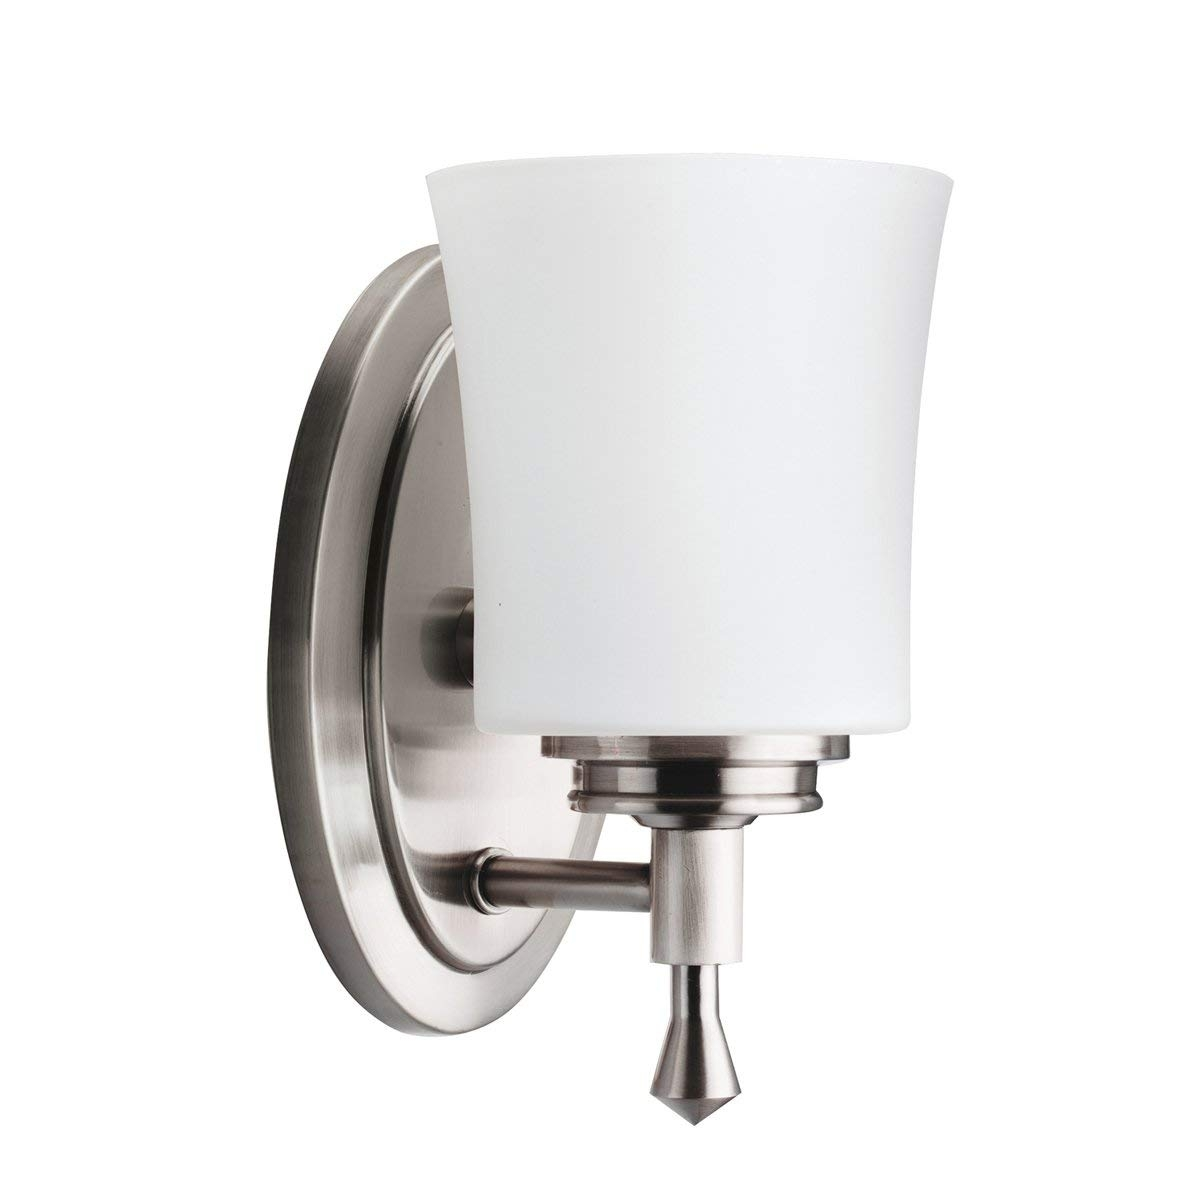 Kichler Wharton Wall Sconce Light Brushed Nickel Vanity Lighting Regarding Outdoor Lanterns At Bunnings (View 6 of 20)